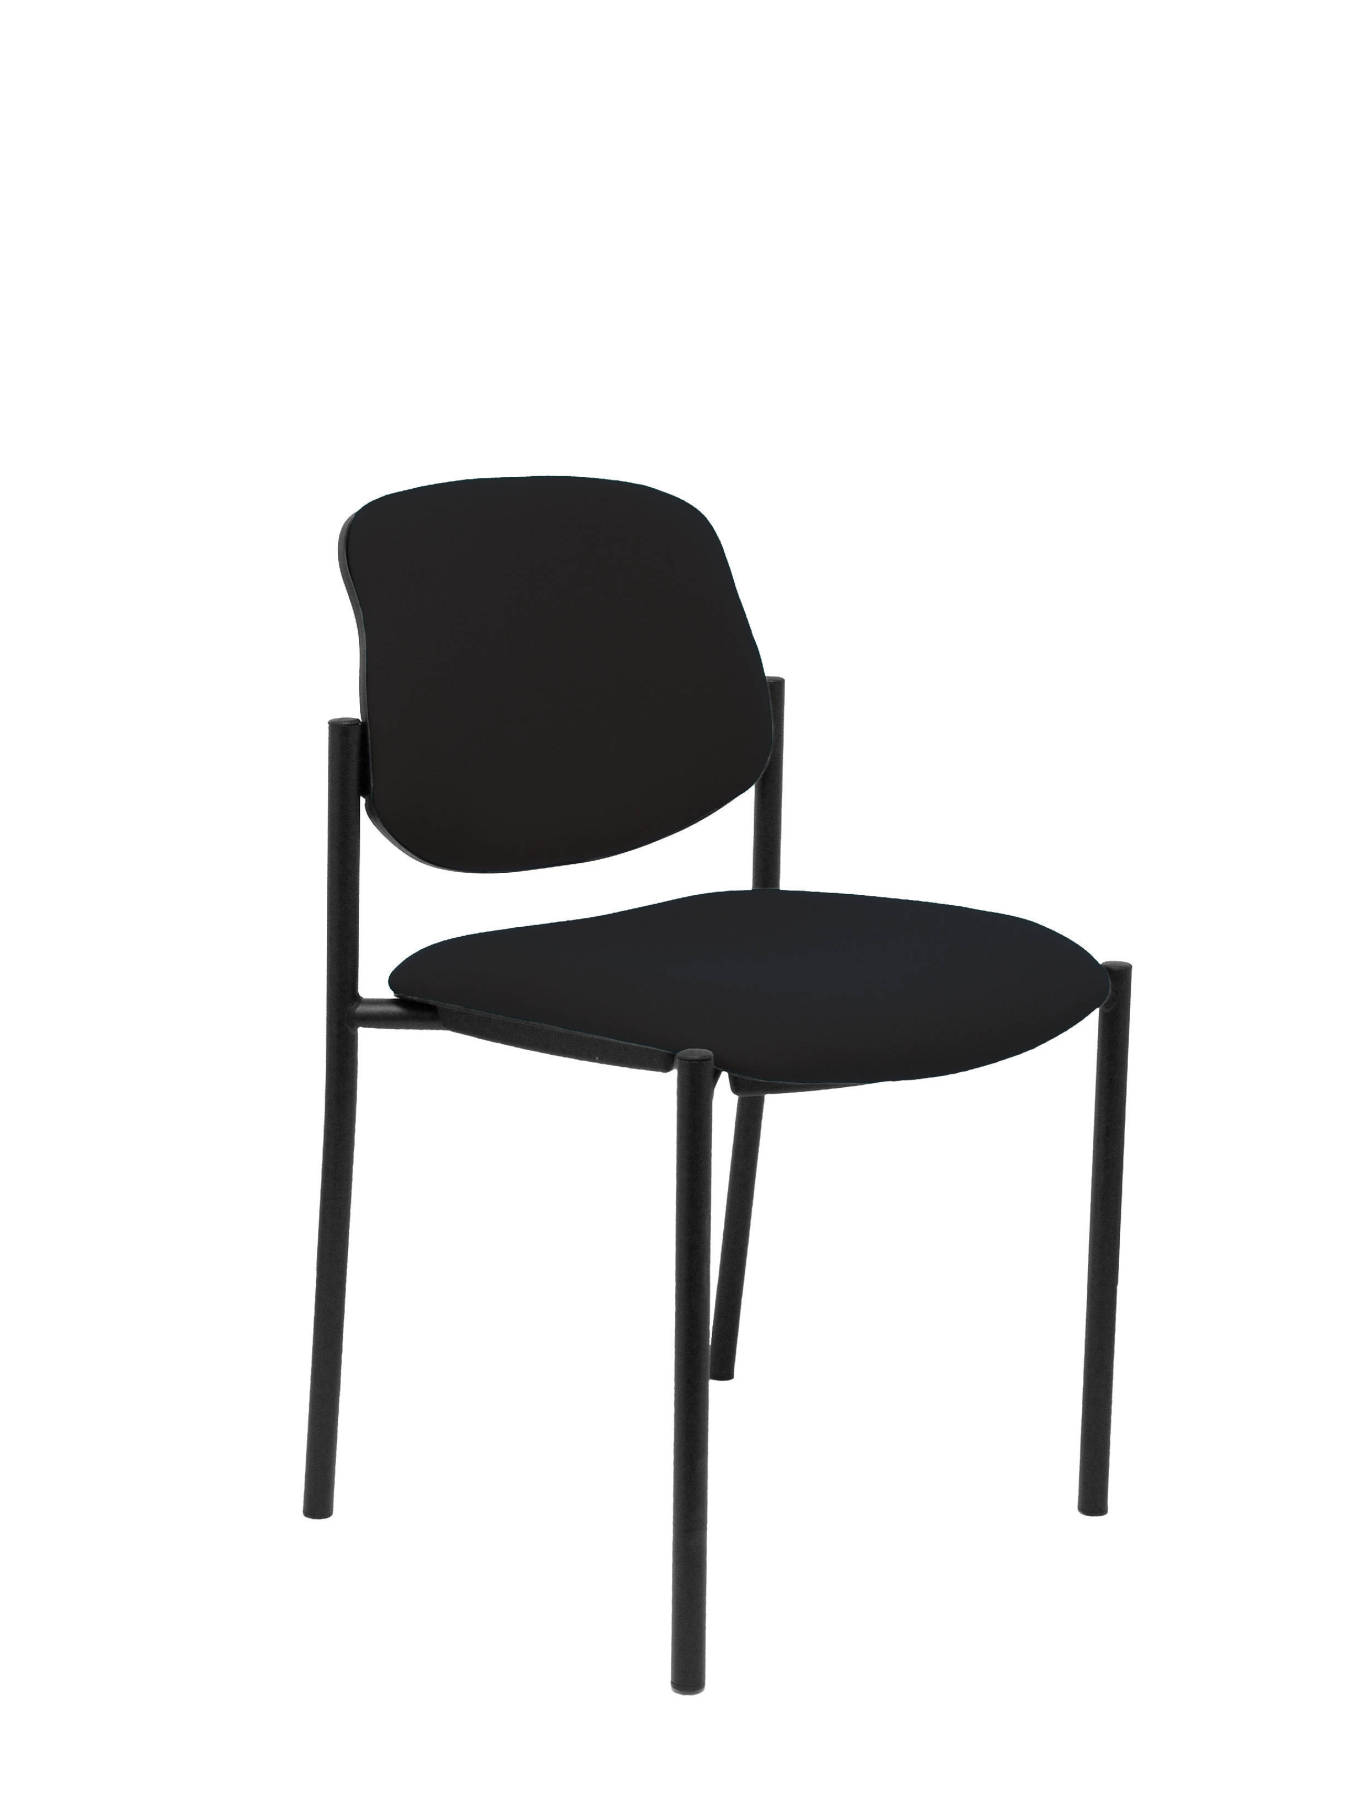 Visitor Chair 4's Topsy And Estructrua Negro-up Seat And Backstop Upholstered In BALI Tissue Color Black TAPHOLE AND CRES